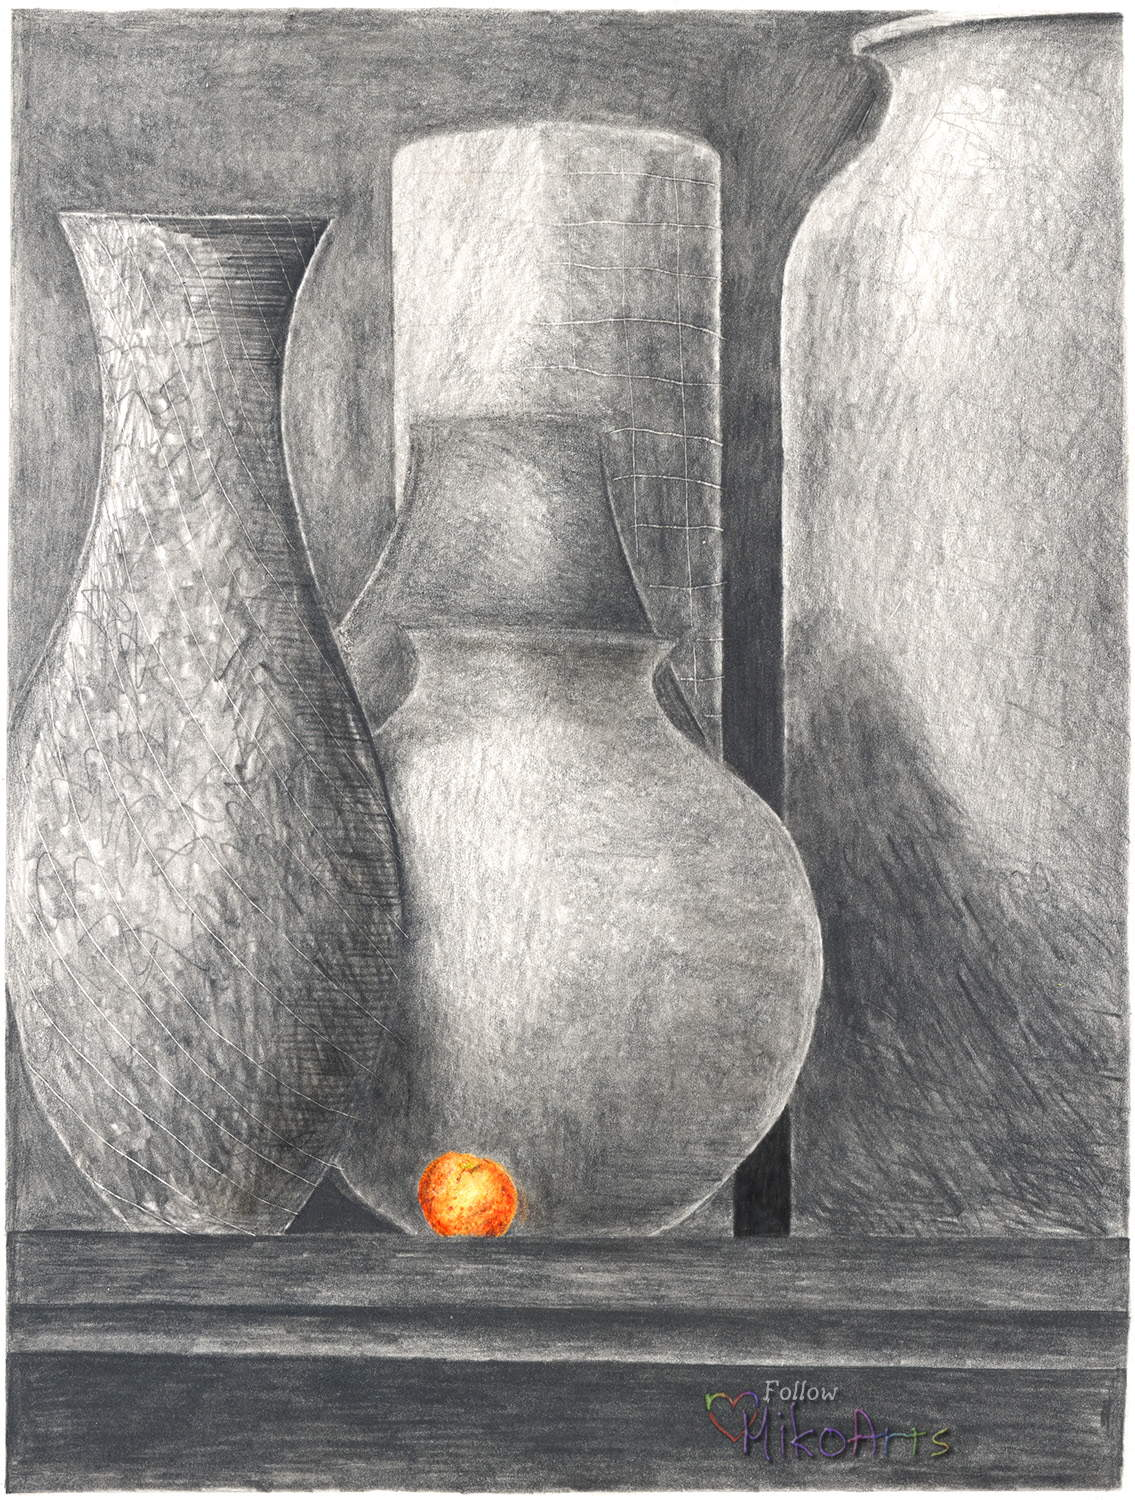 Still Life Drawing Title is Still Life with Orange by Miko Zen MikoArts Copyright 2019 W